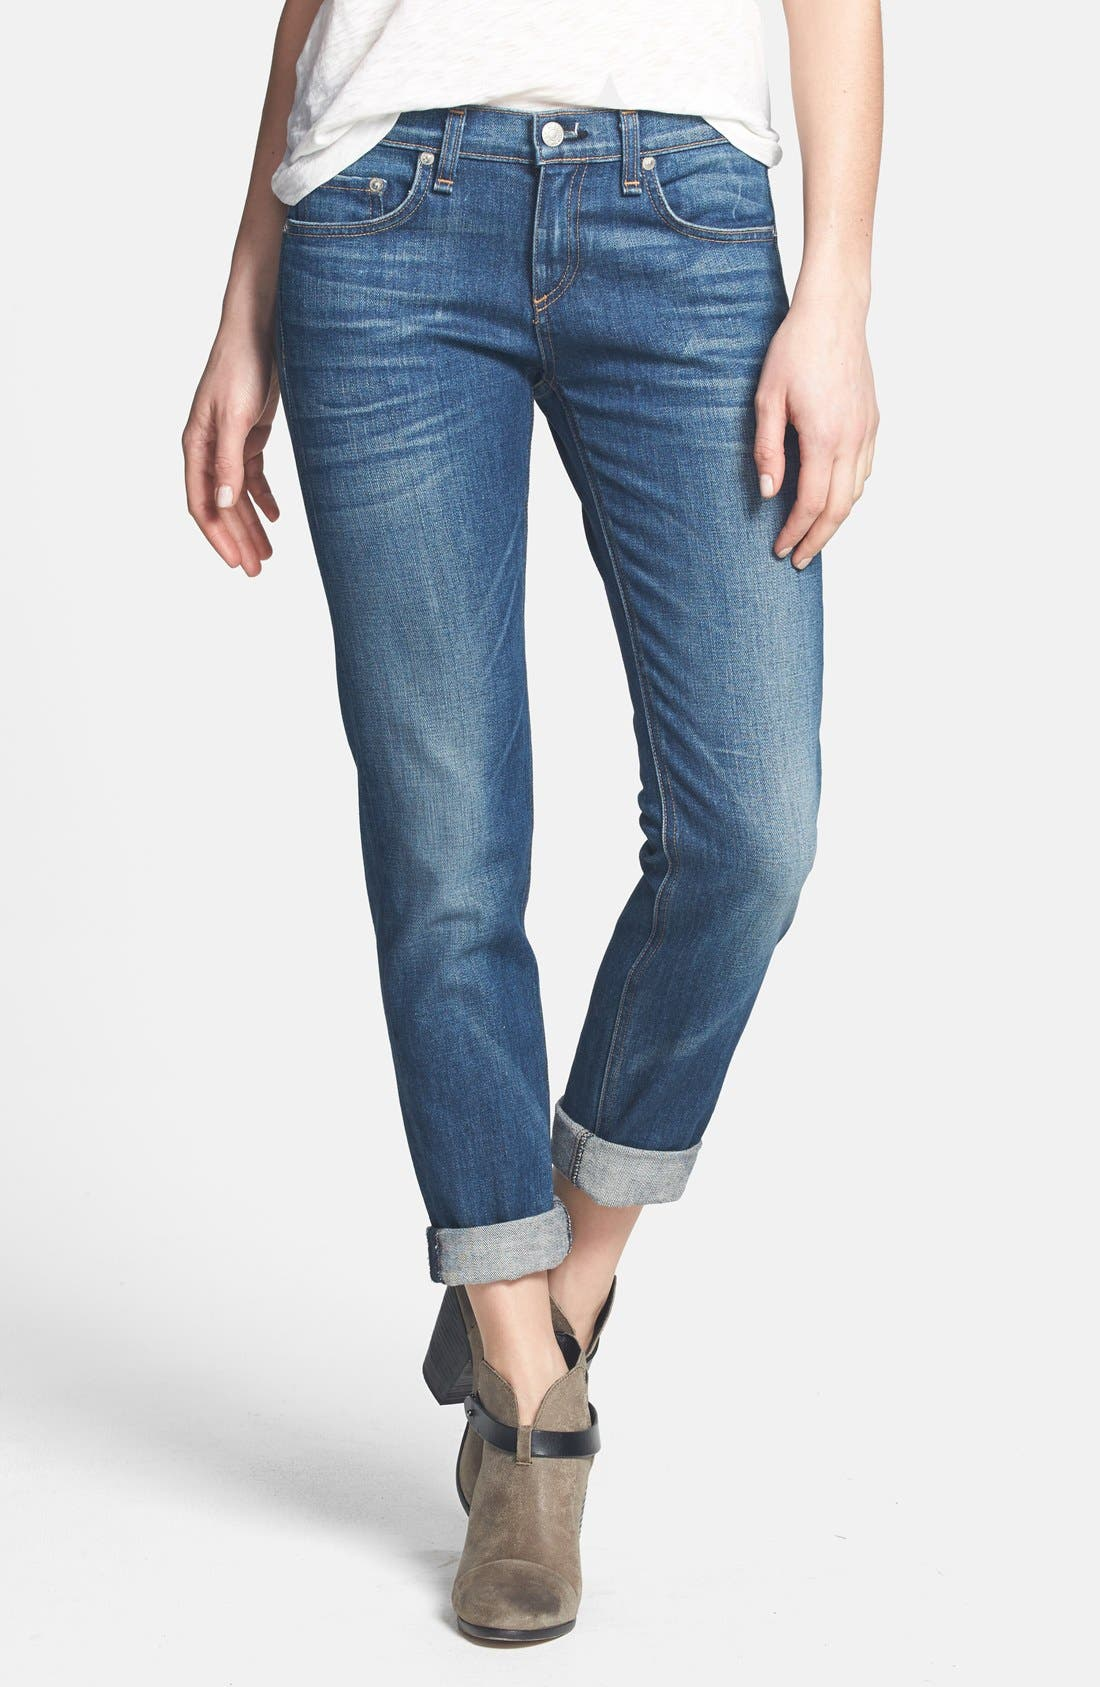 Main Image - rag & bone/JEAN 'The Dre' Slim Fit Boyfriend Jeans (Bradford)